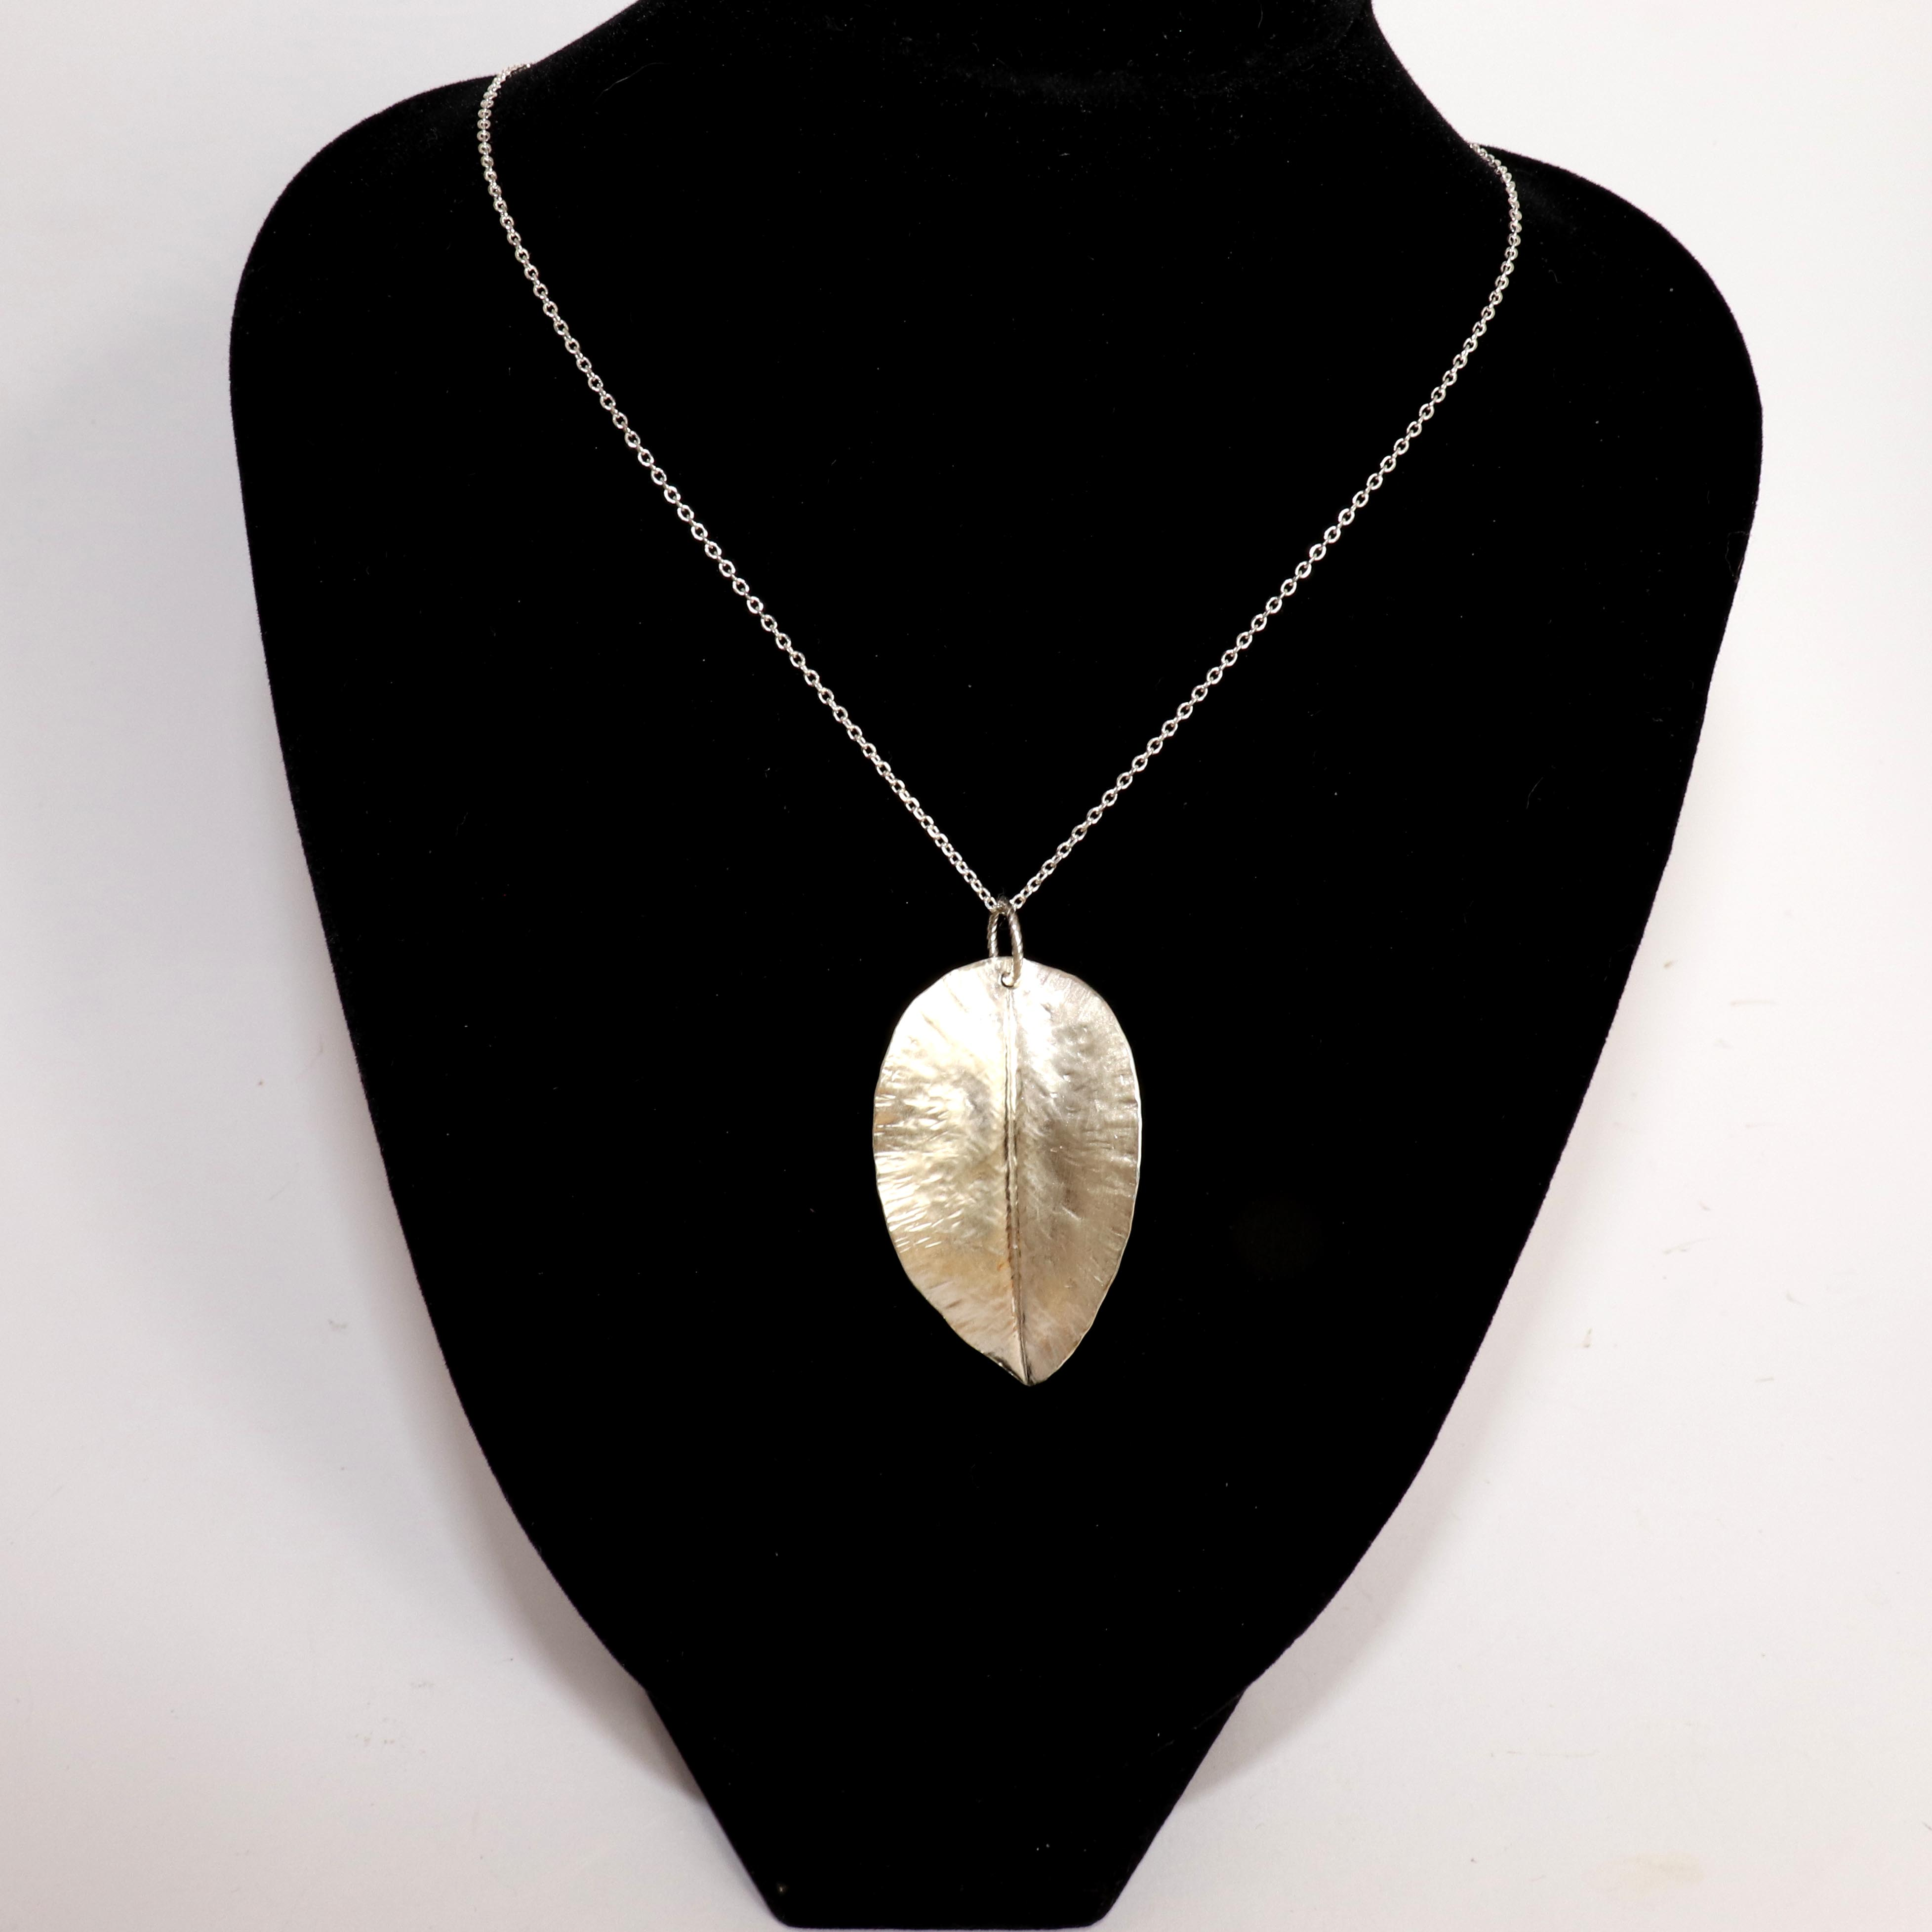 Satin Finish Fine Silver Textured Leaf Pendant Necklace